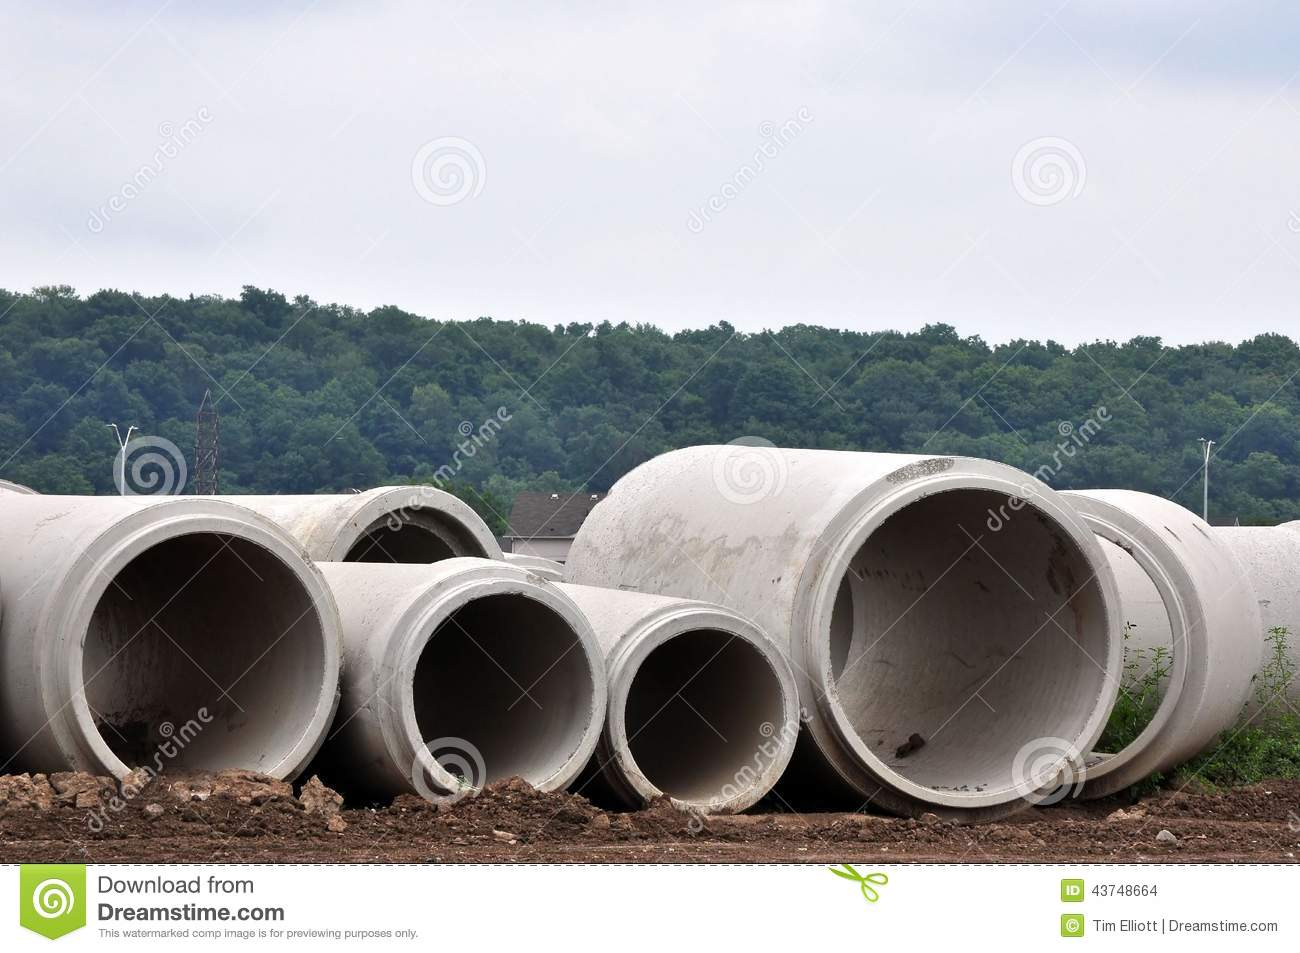 Concrete Sewer Pipe Sizes : Concrete sewer pipes stock photo image